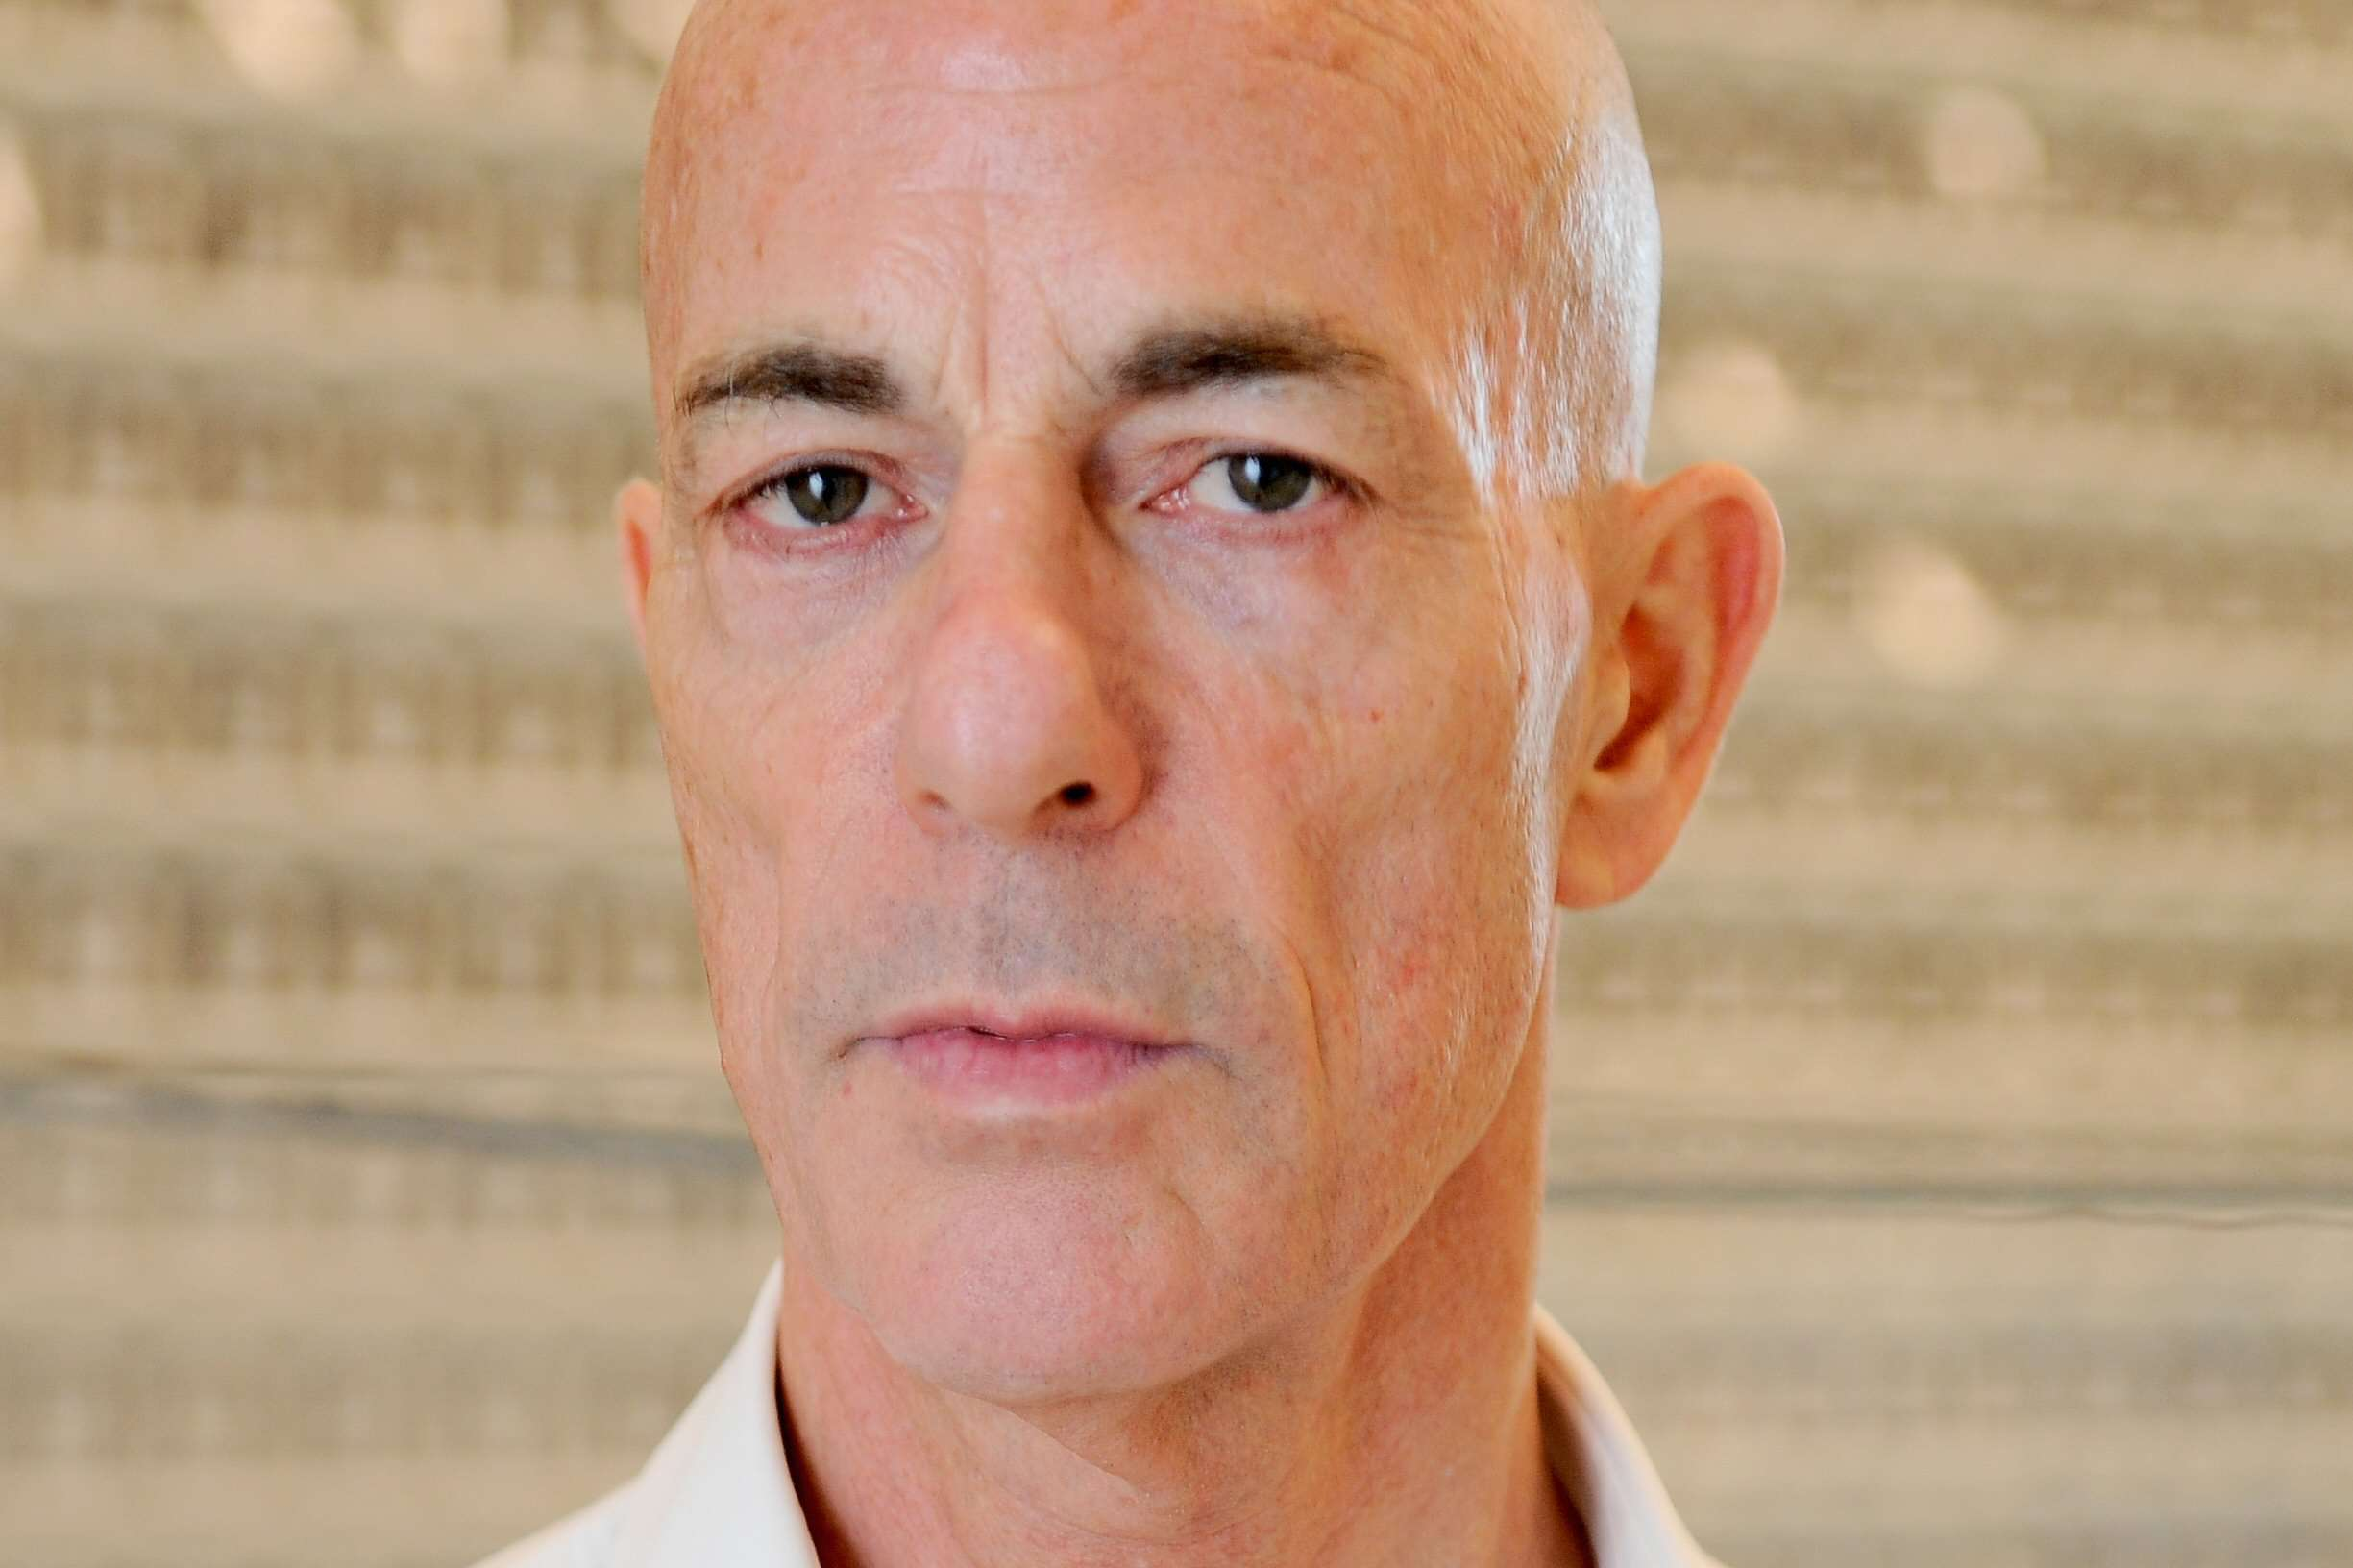 bald white man with dark eyebrows and intensive stare toward the camera